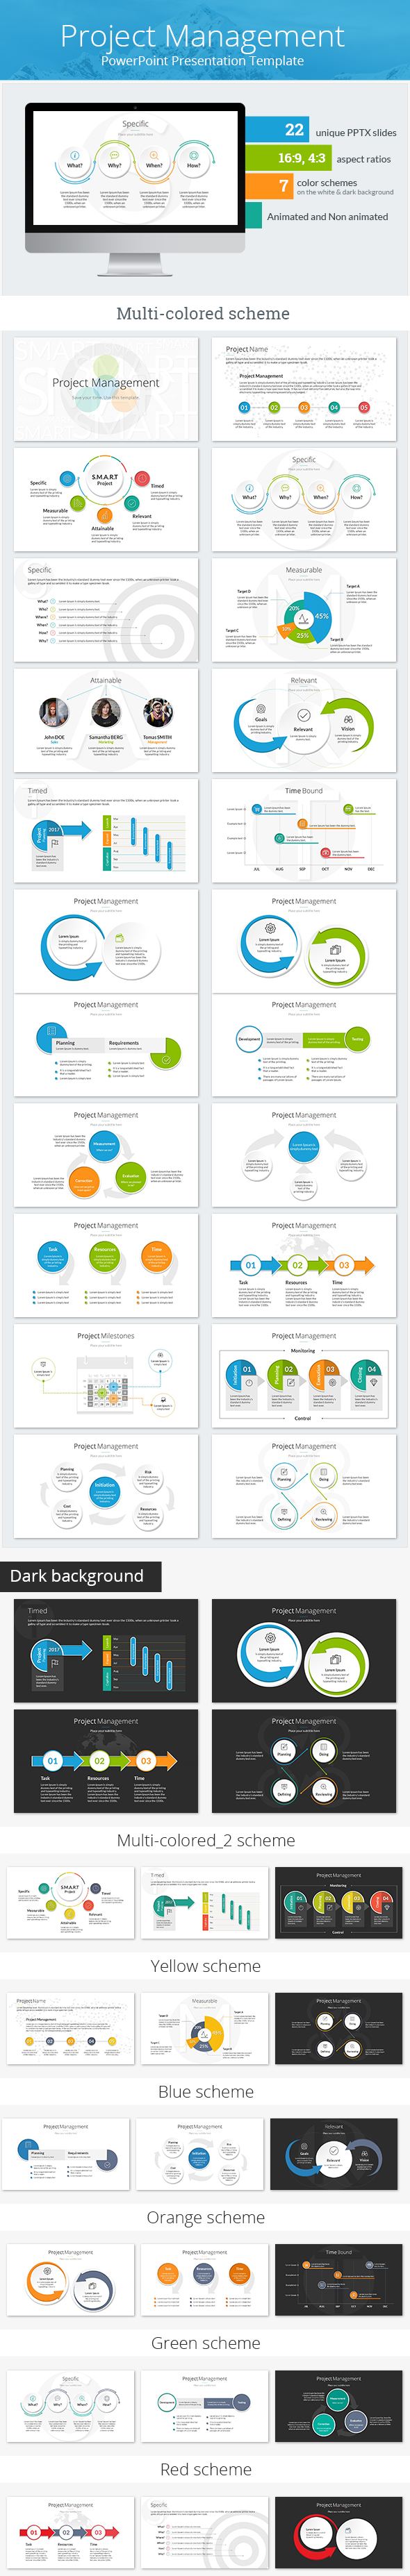 Project Management PowerPoint Presentation Template (PowerPoint Templates)